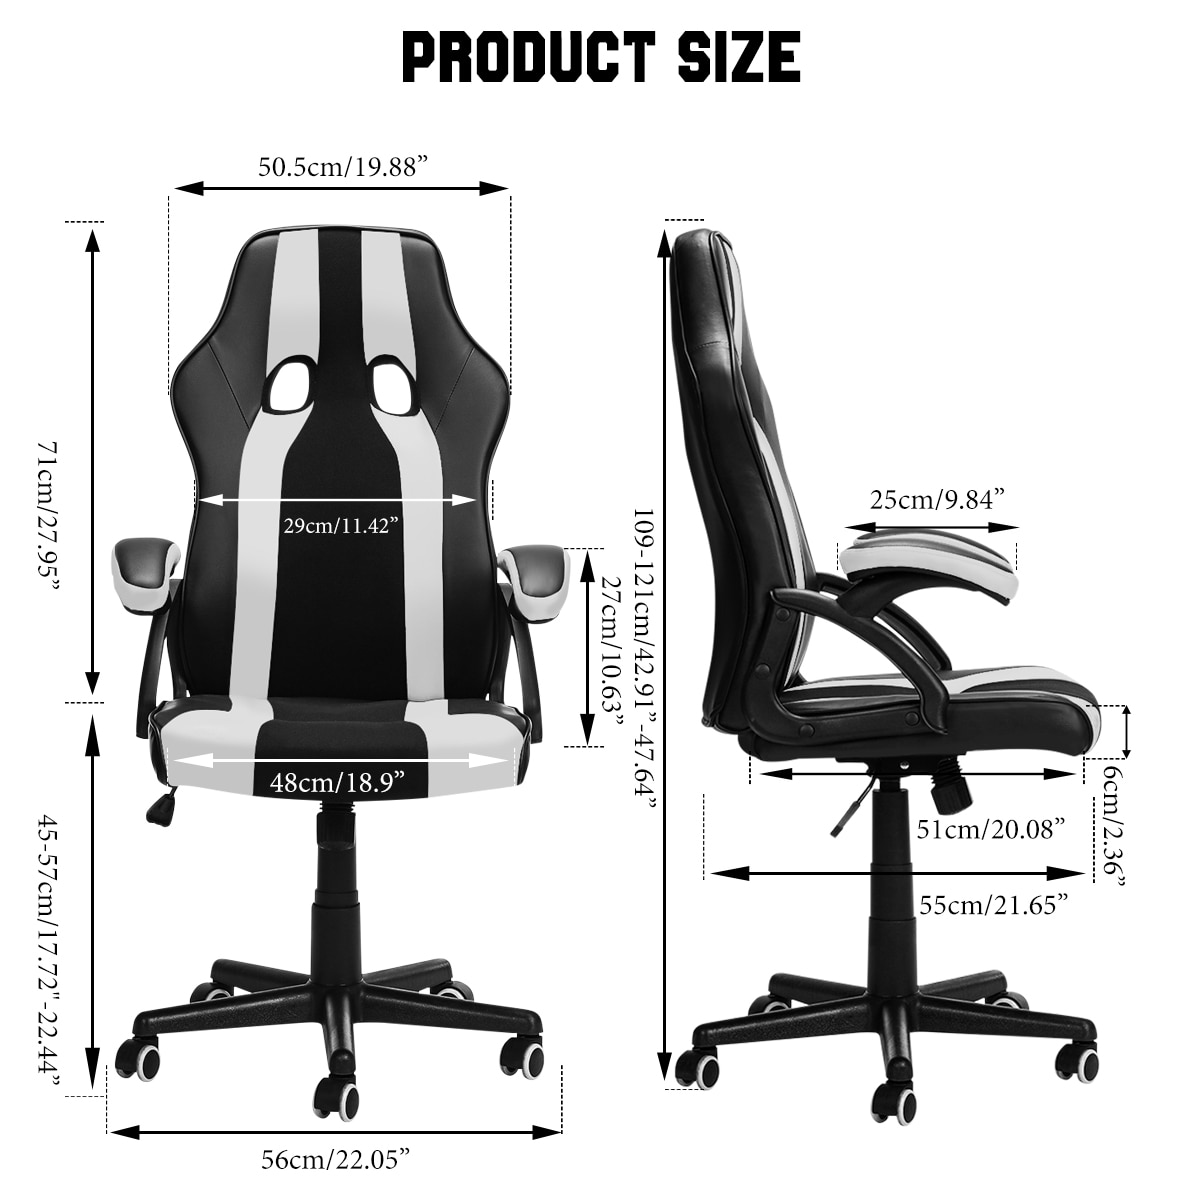 H173d511ccee348c5aab4a87289d38d20F - Gaming Office Chairs Executive Computer Chair Desk Chair Comfortable Seating Adjustable Swivel Racing Armchair Office Furniture